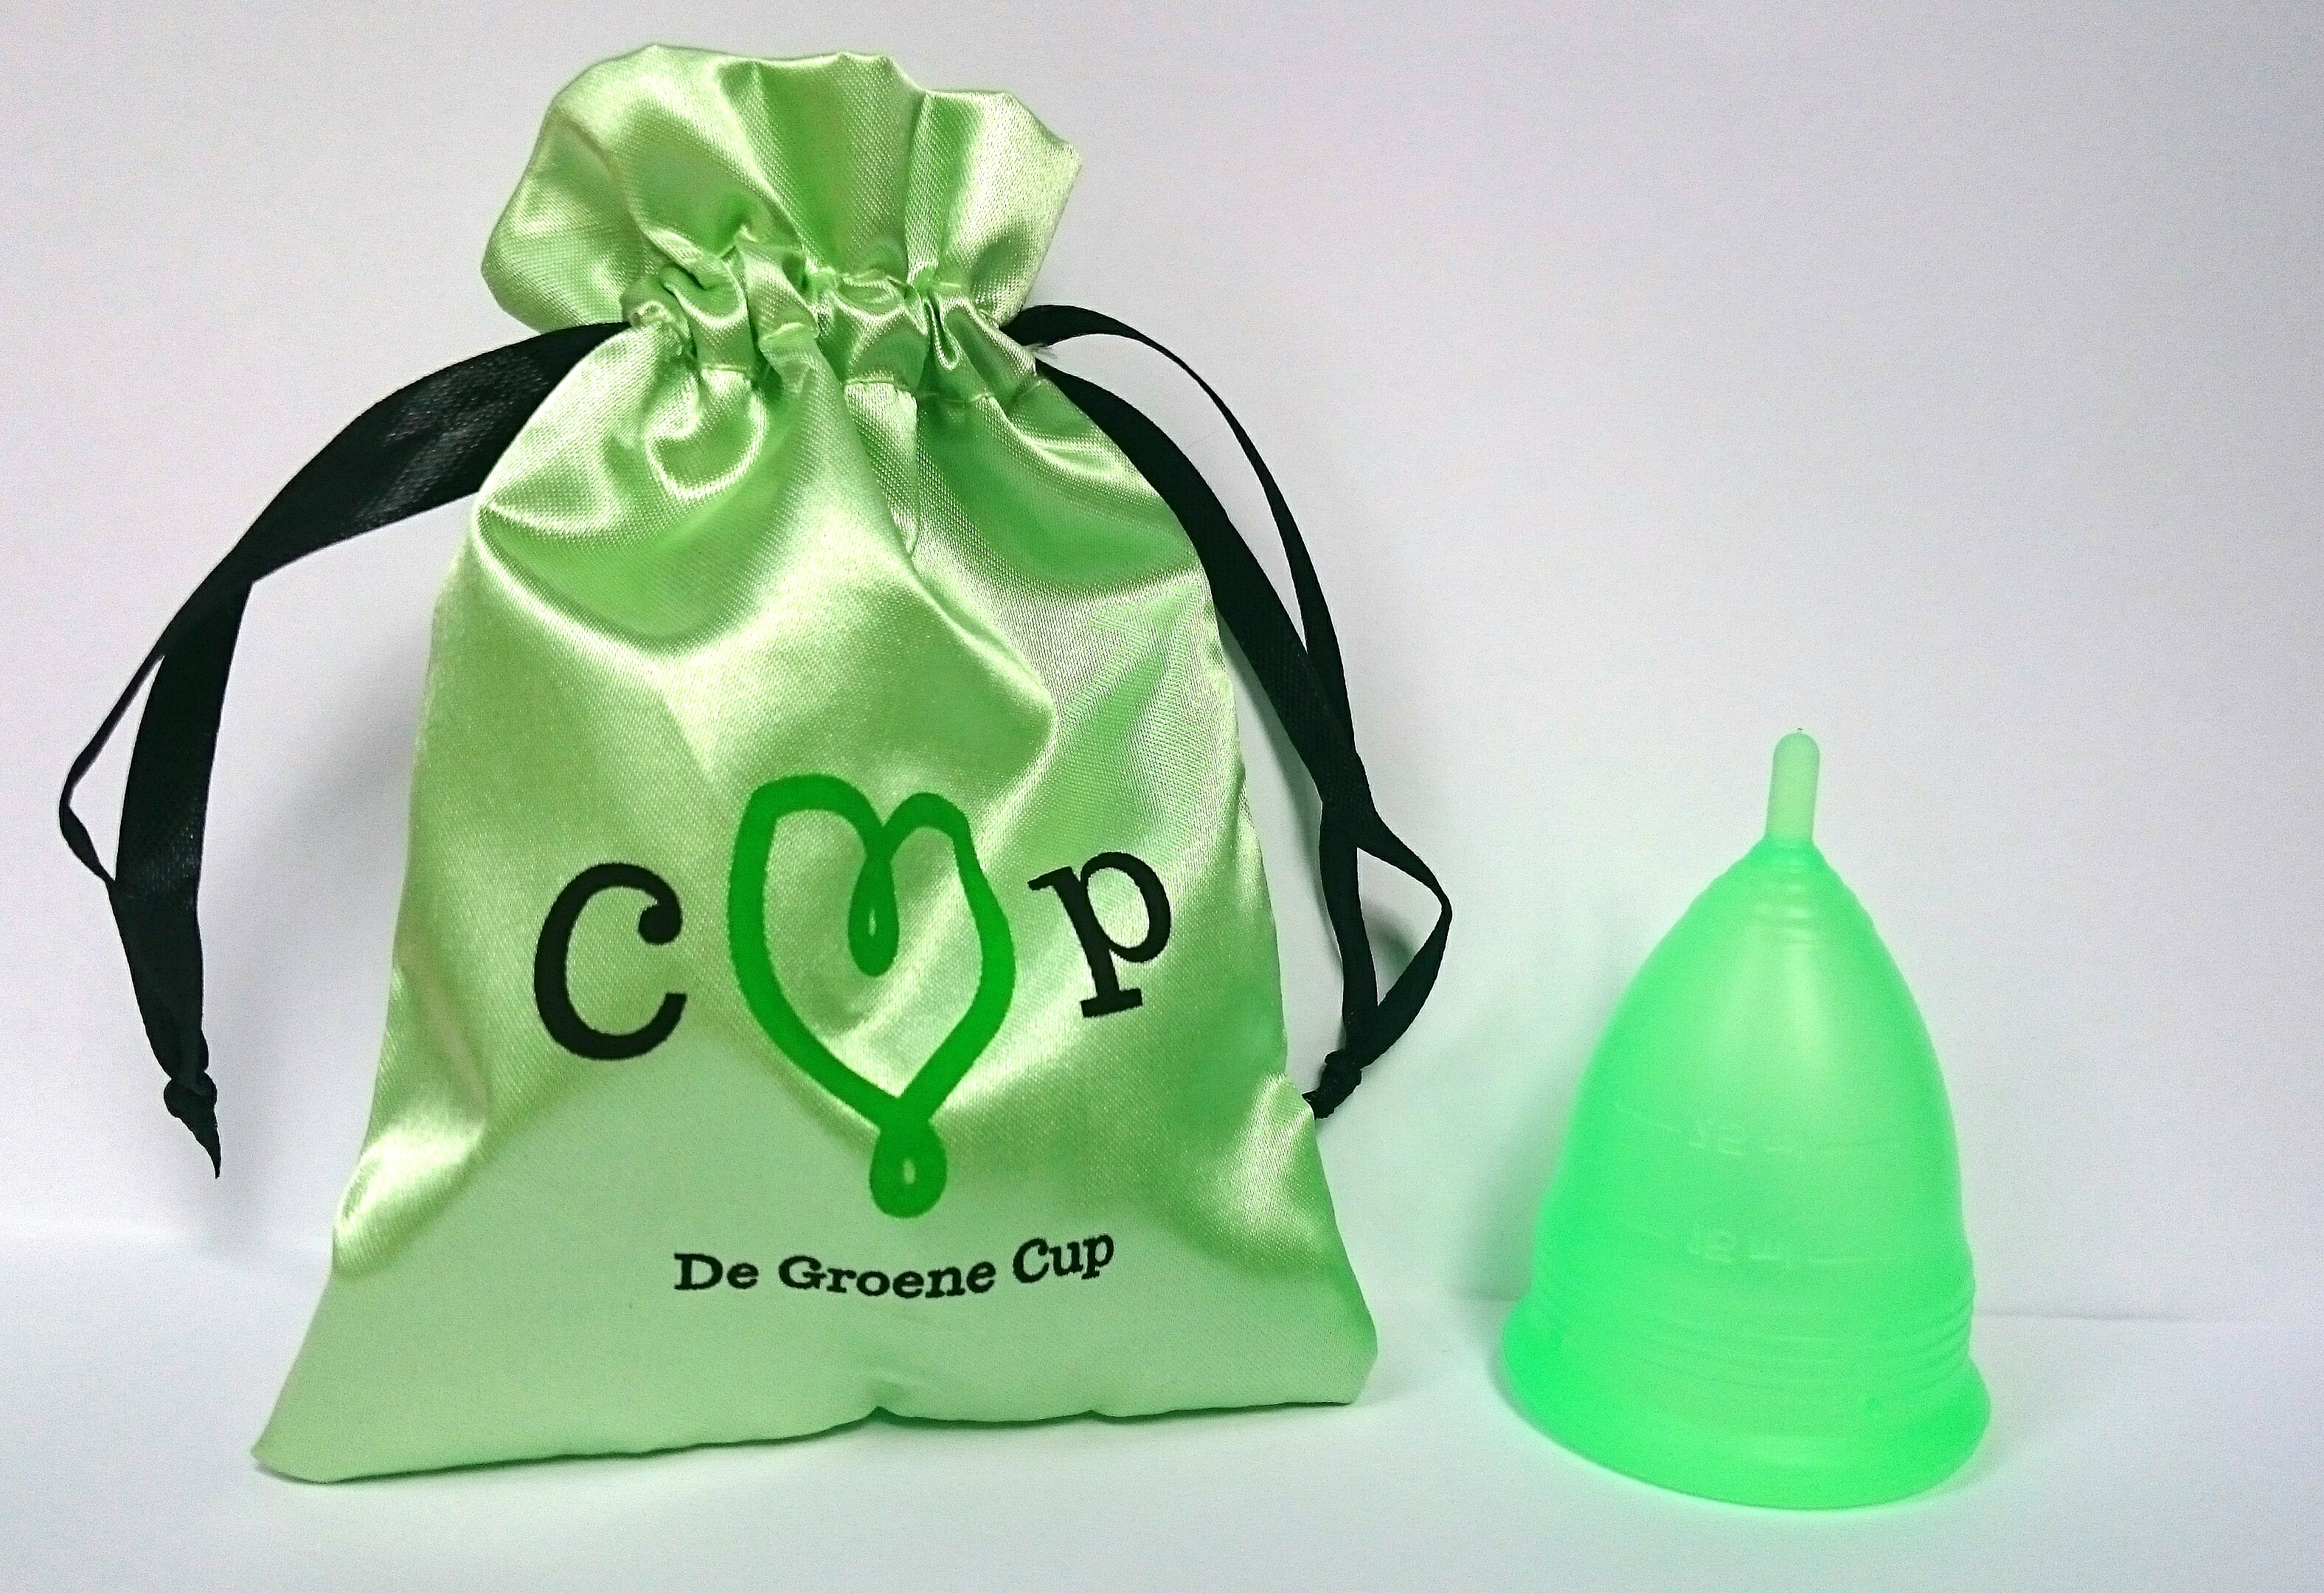 De Groen Cup ~ the green cup, with silk pouch